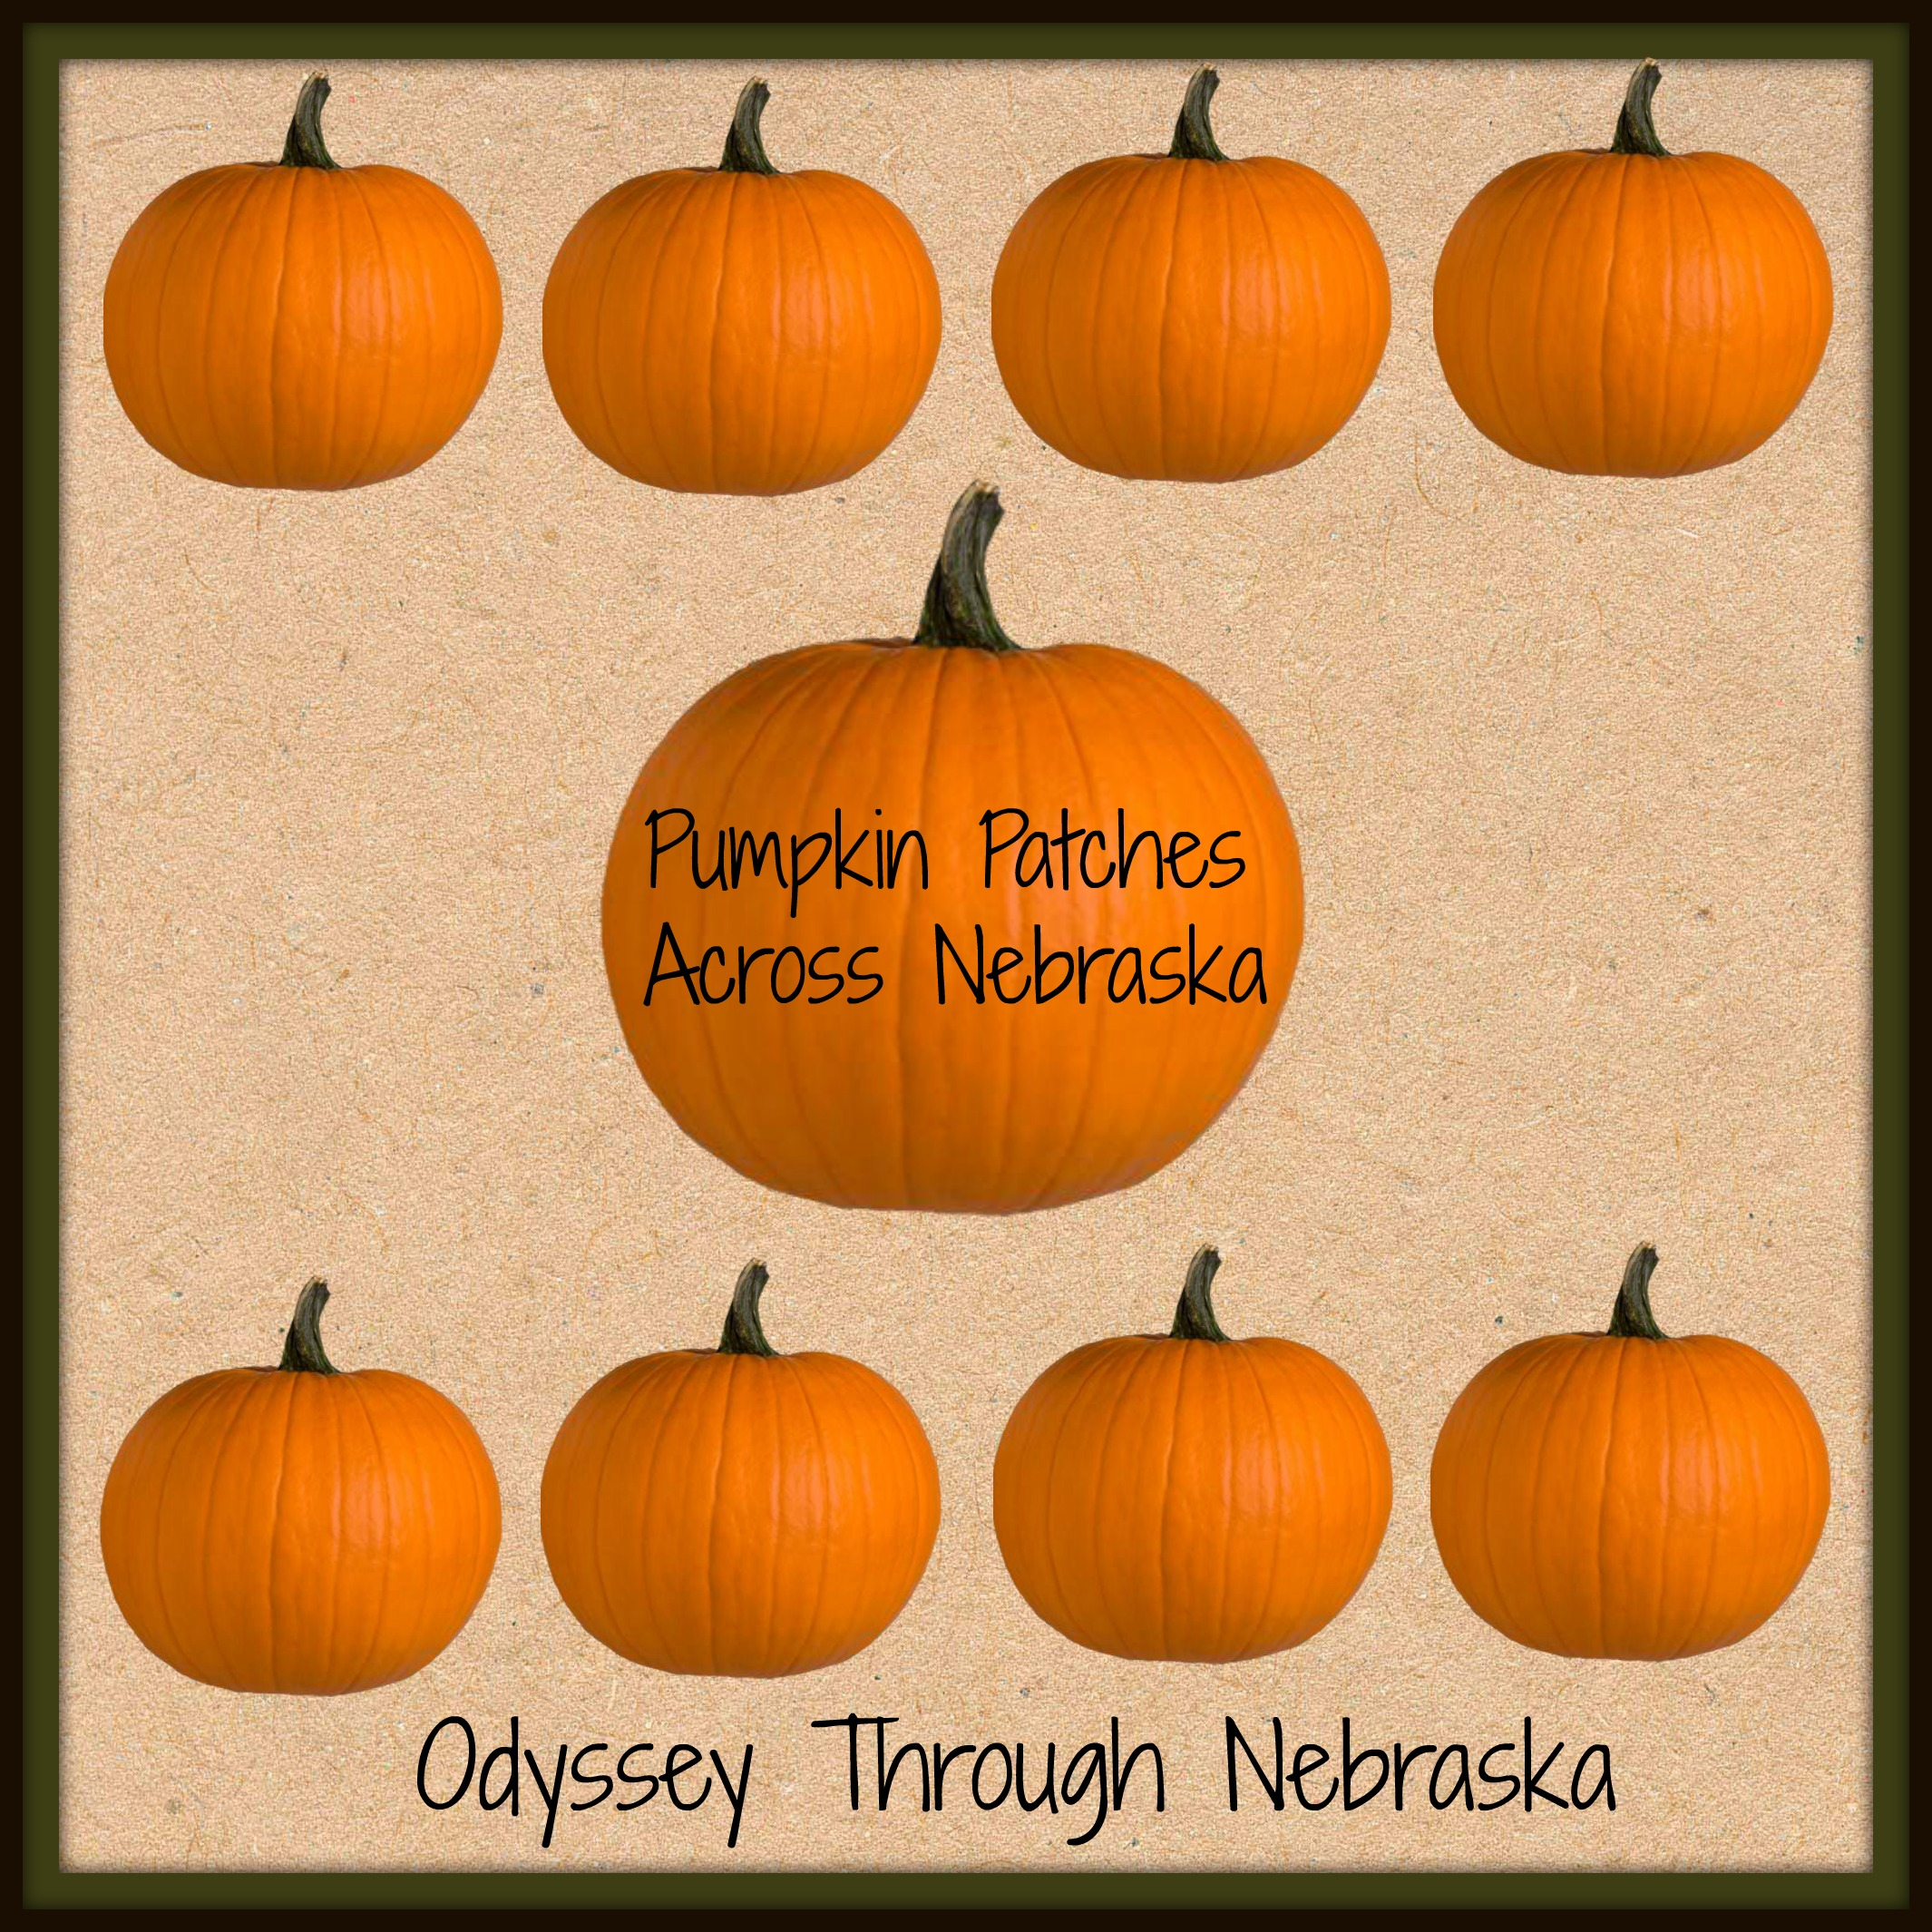 Nebraska Pumpkin Patches